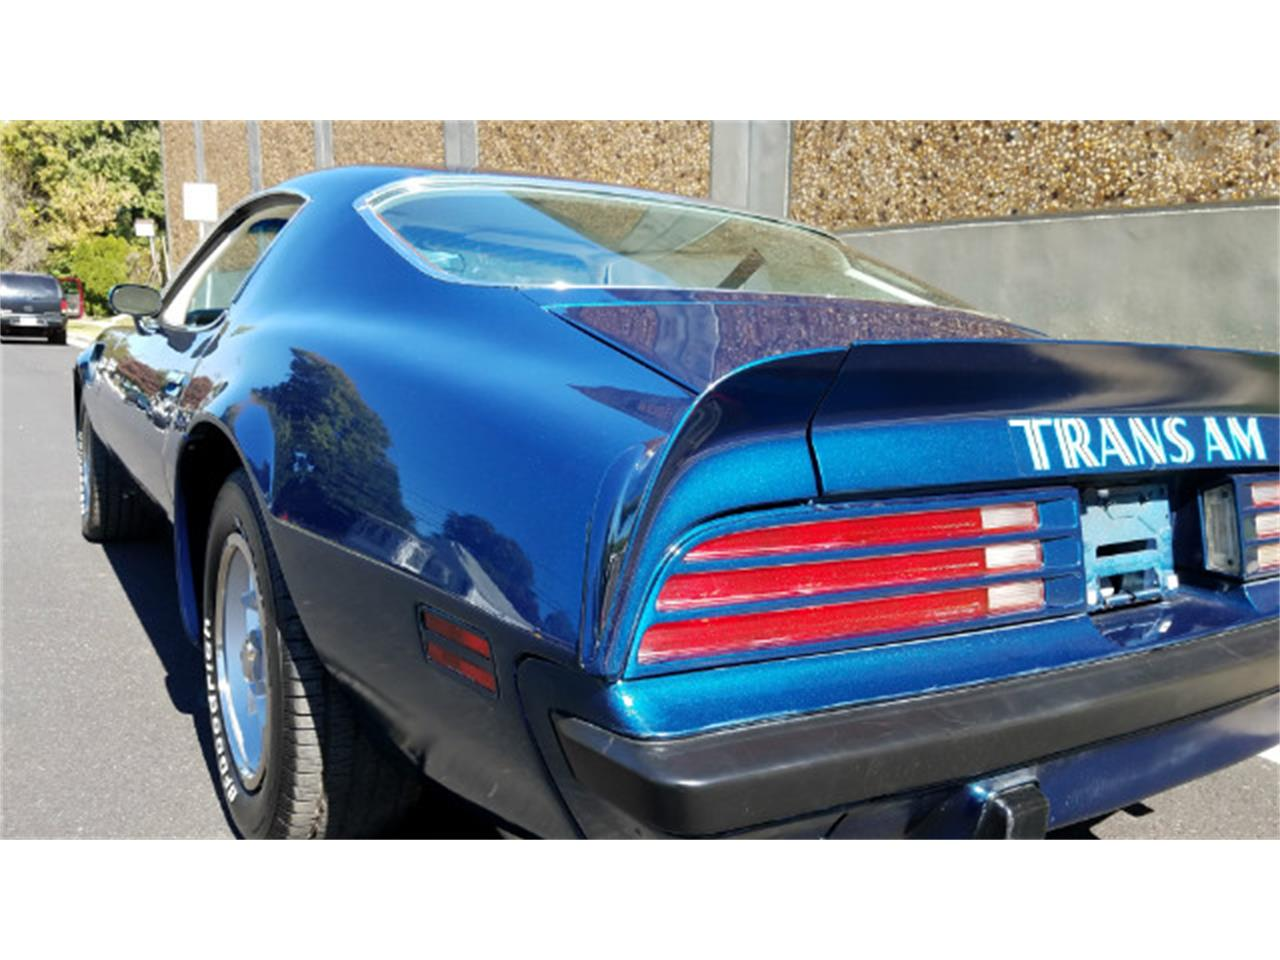 Large Picture of 1974 Firebird Trans Am - $78,900.00 Offered by Universal Auto Sales - MO89